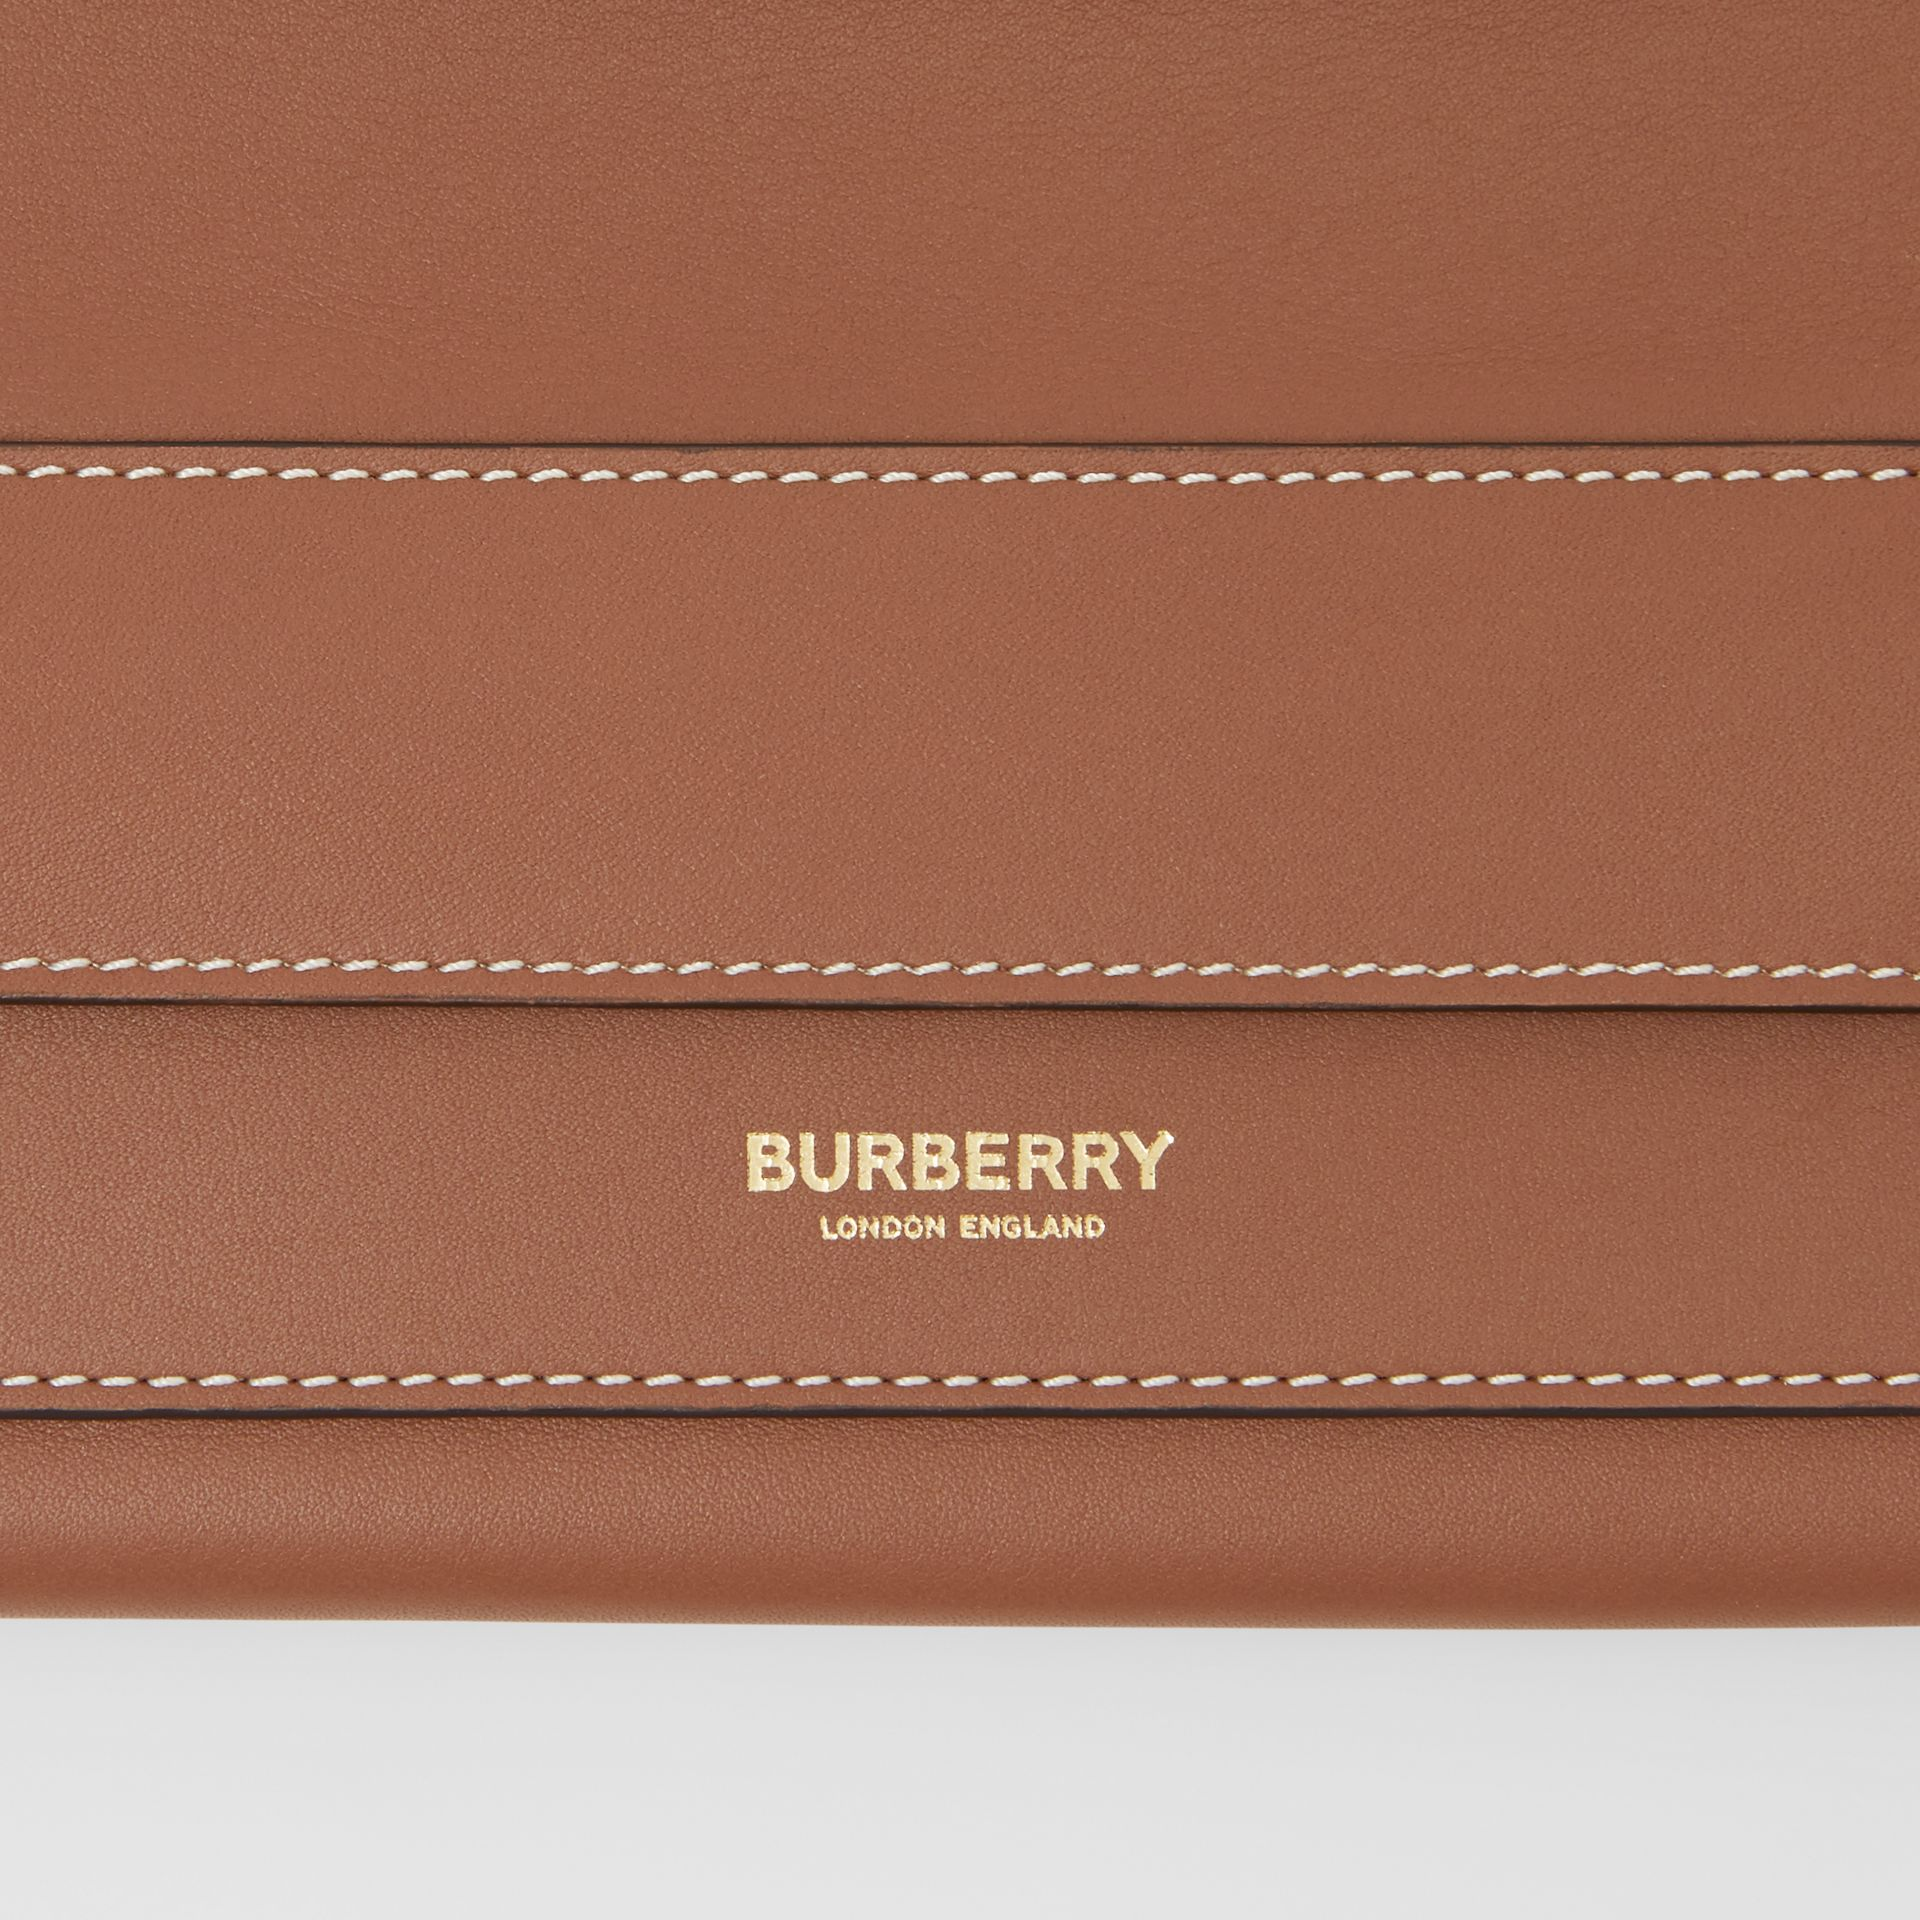 Mini Topstitched Lambskin Pocket Clutch in Malt Brown - Women | Burberry - gallery image 1